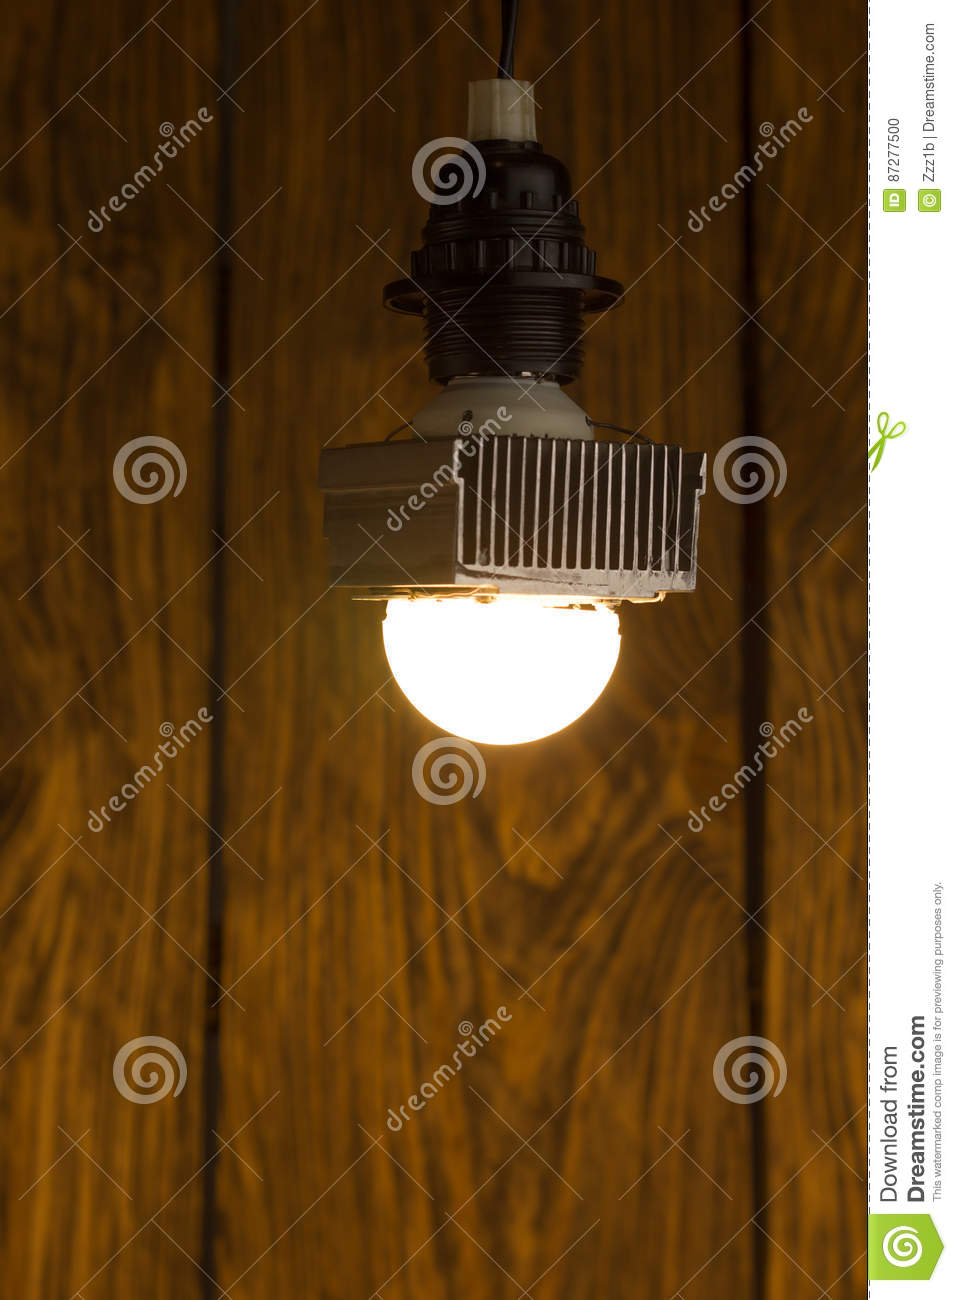 Diy Kerosene Lamp Diy Led Lamp On Wooden Background Stock Photo Image Of Fixture